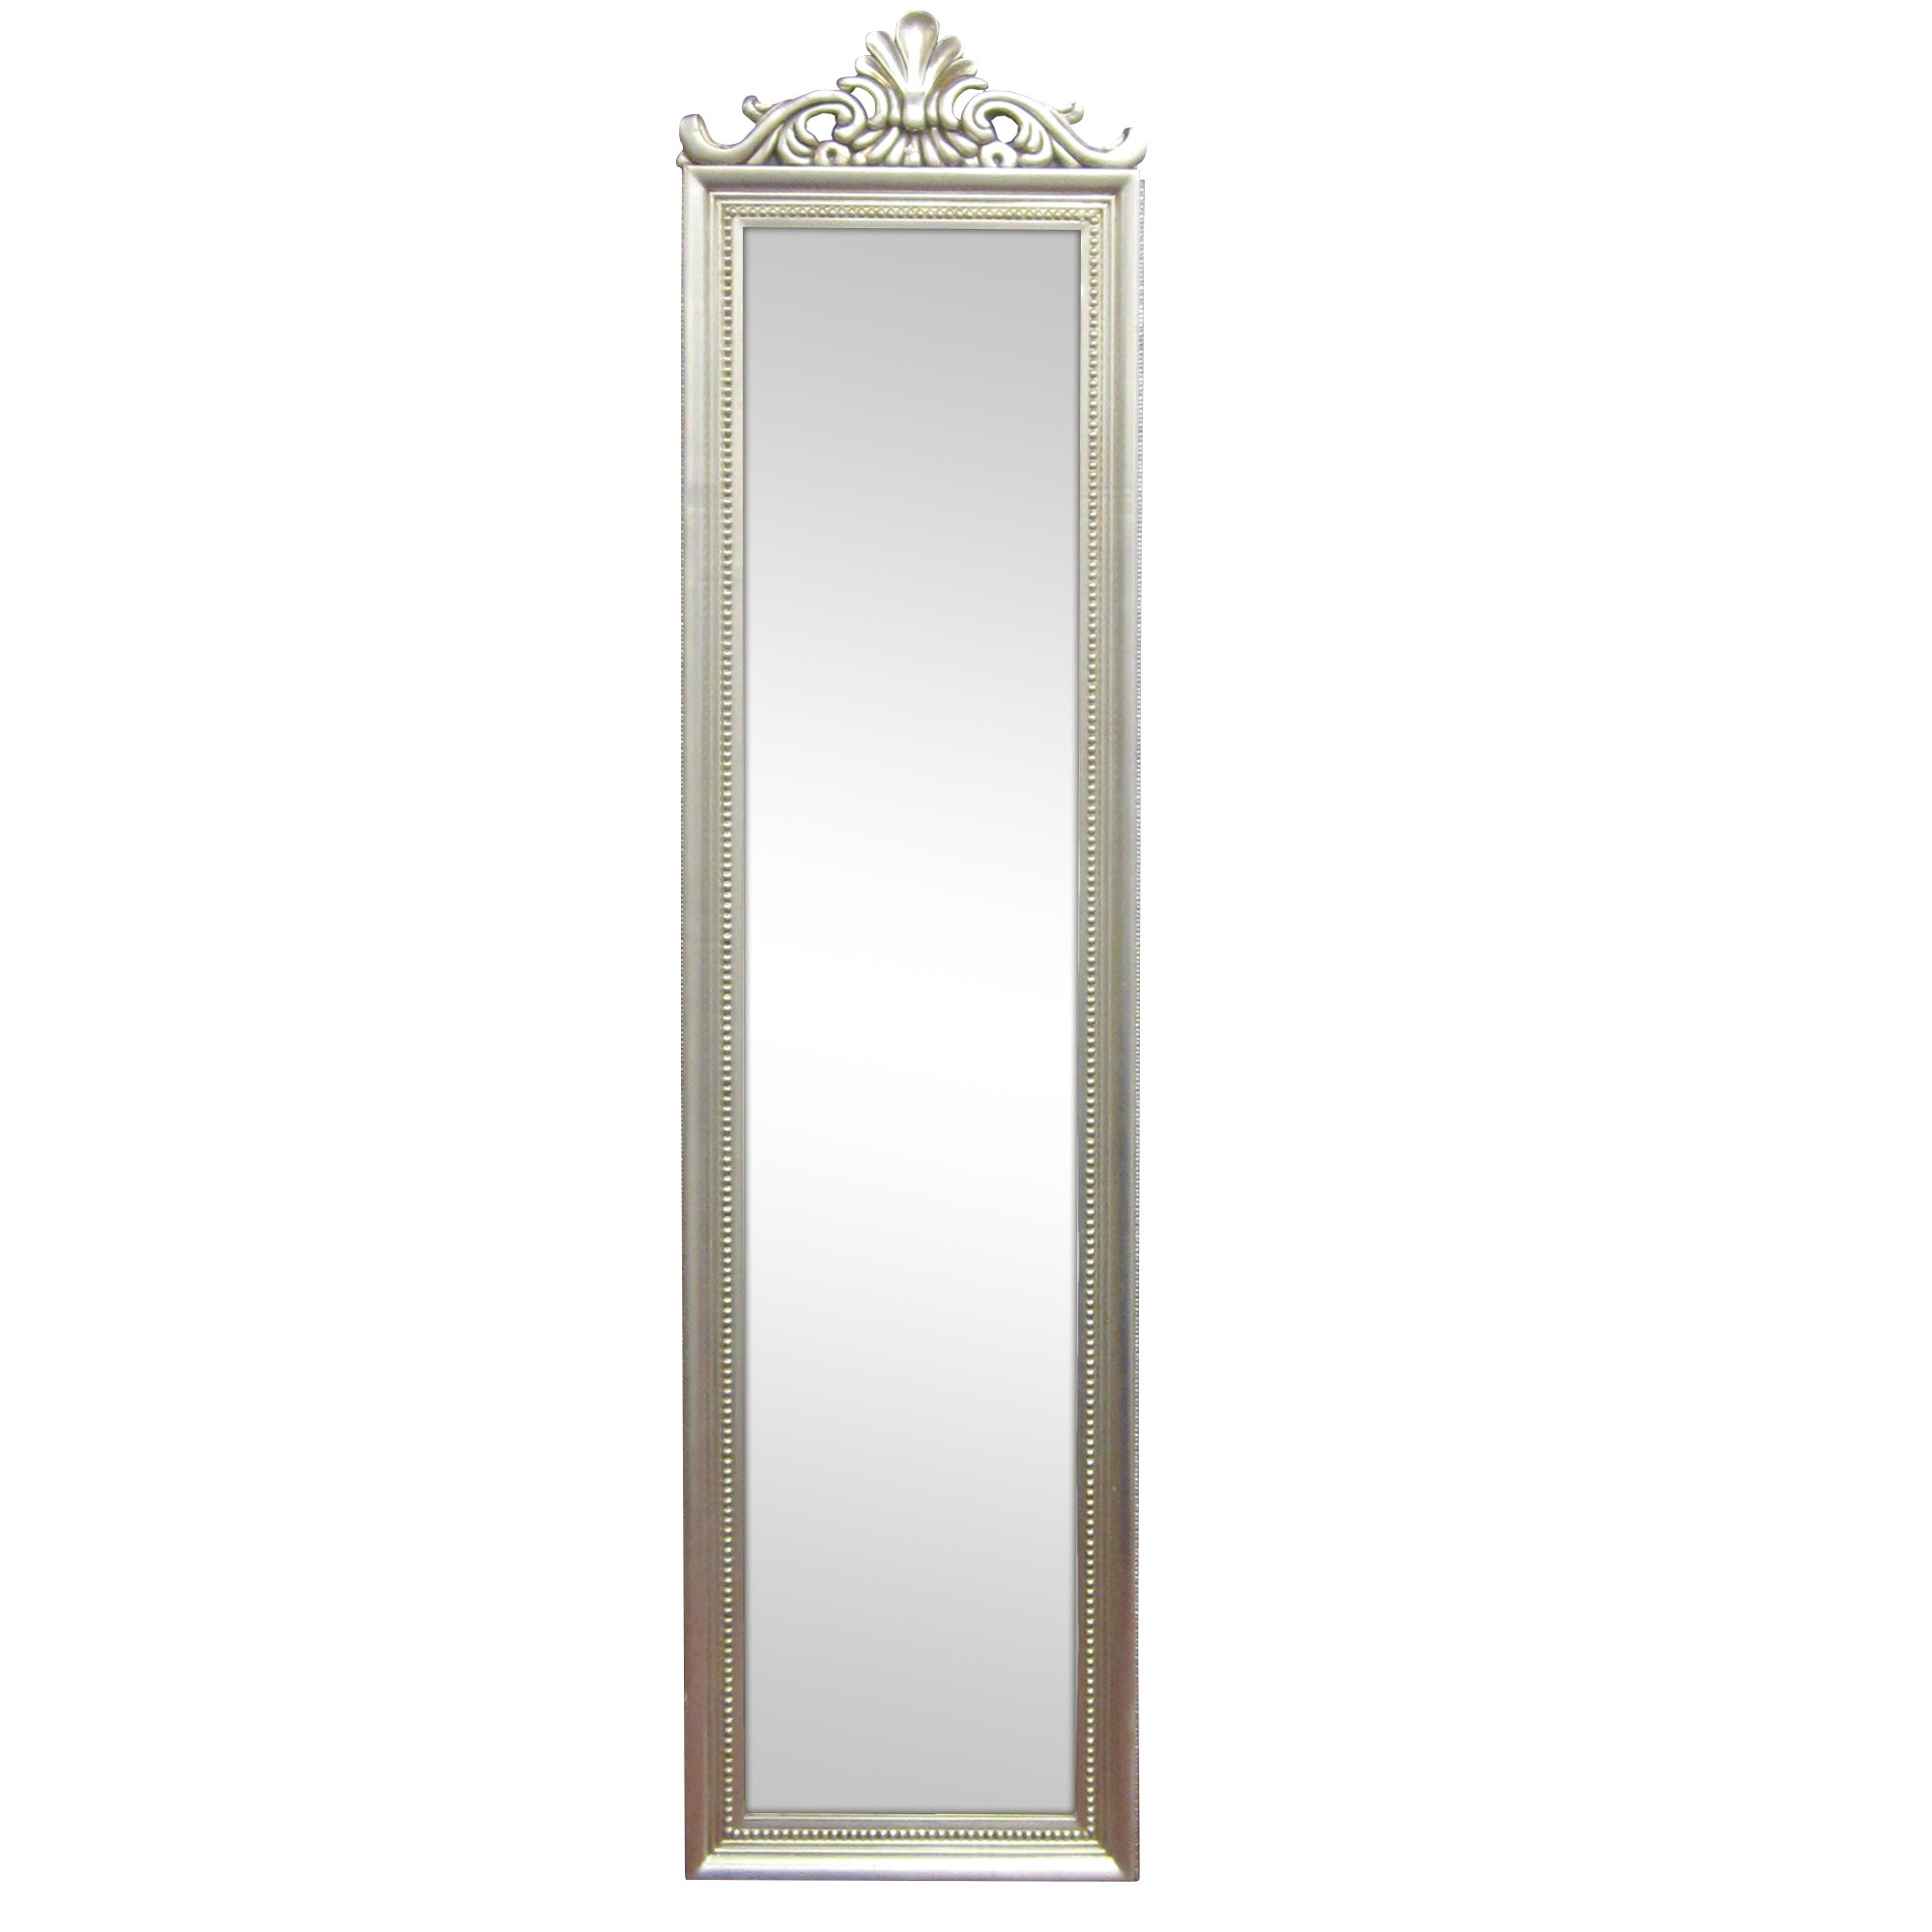 Ornate Cheval Full Length Mirror